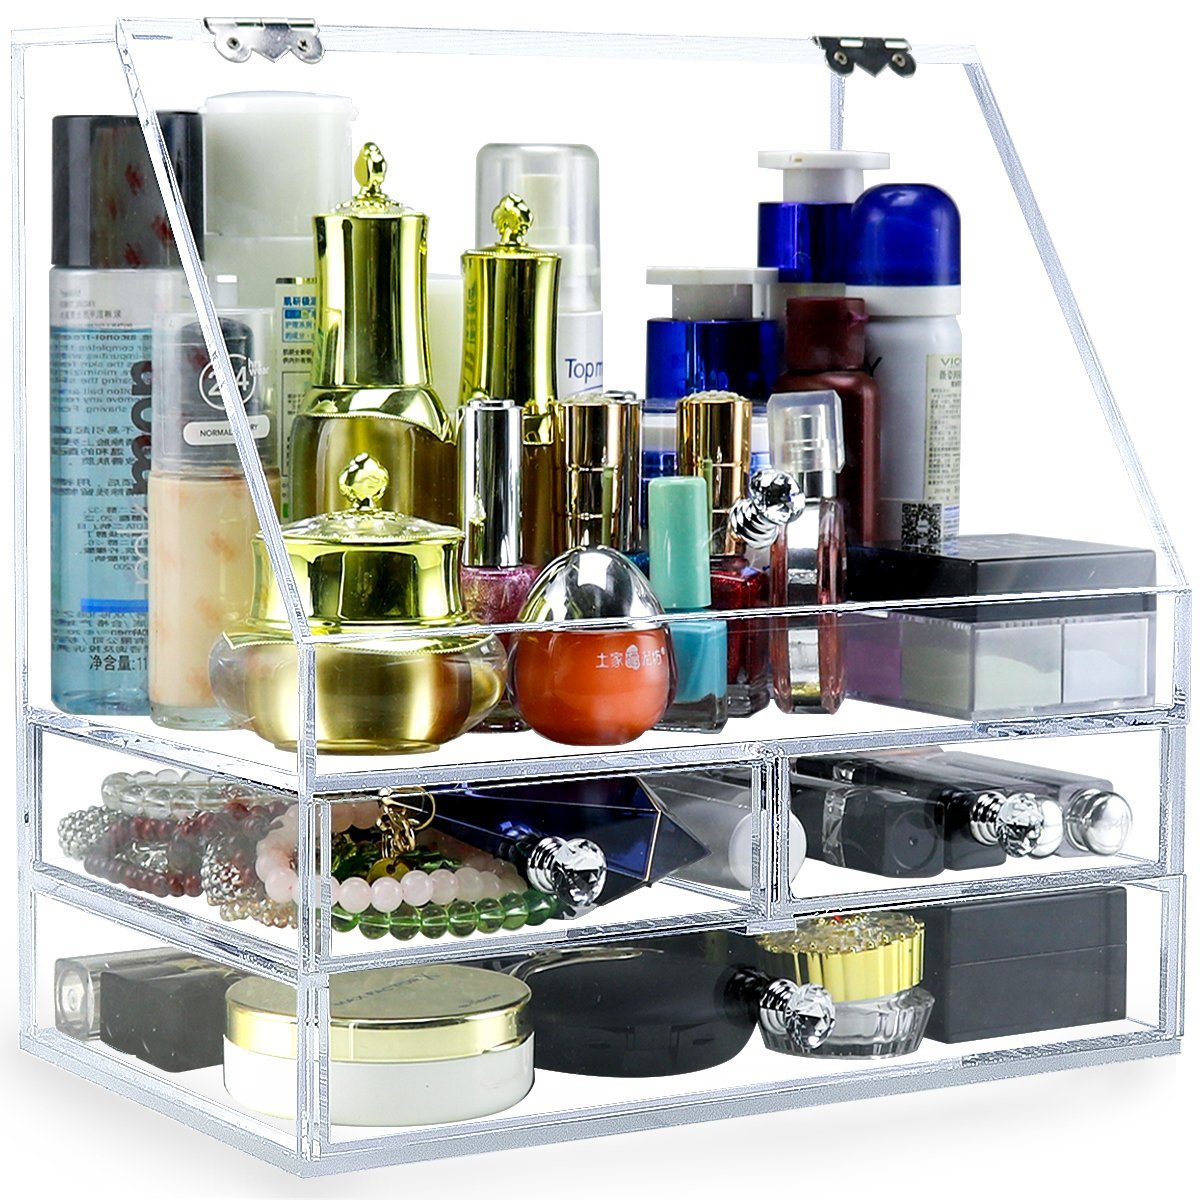 4mm Acrylic Makeup Organizer with Lid, Clear Bathroom Vanity Organizer with 3 Drawer, Jewelry Holder Box to Tidy Your Cosmetics, Brush tools, Skin Care - NEWCREA